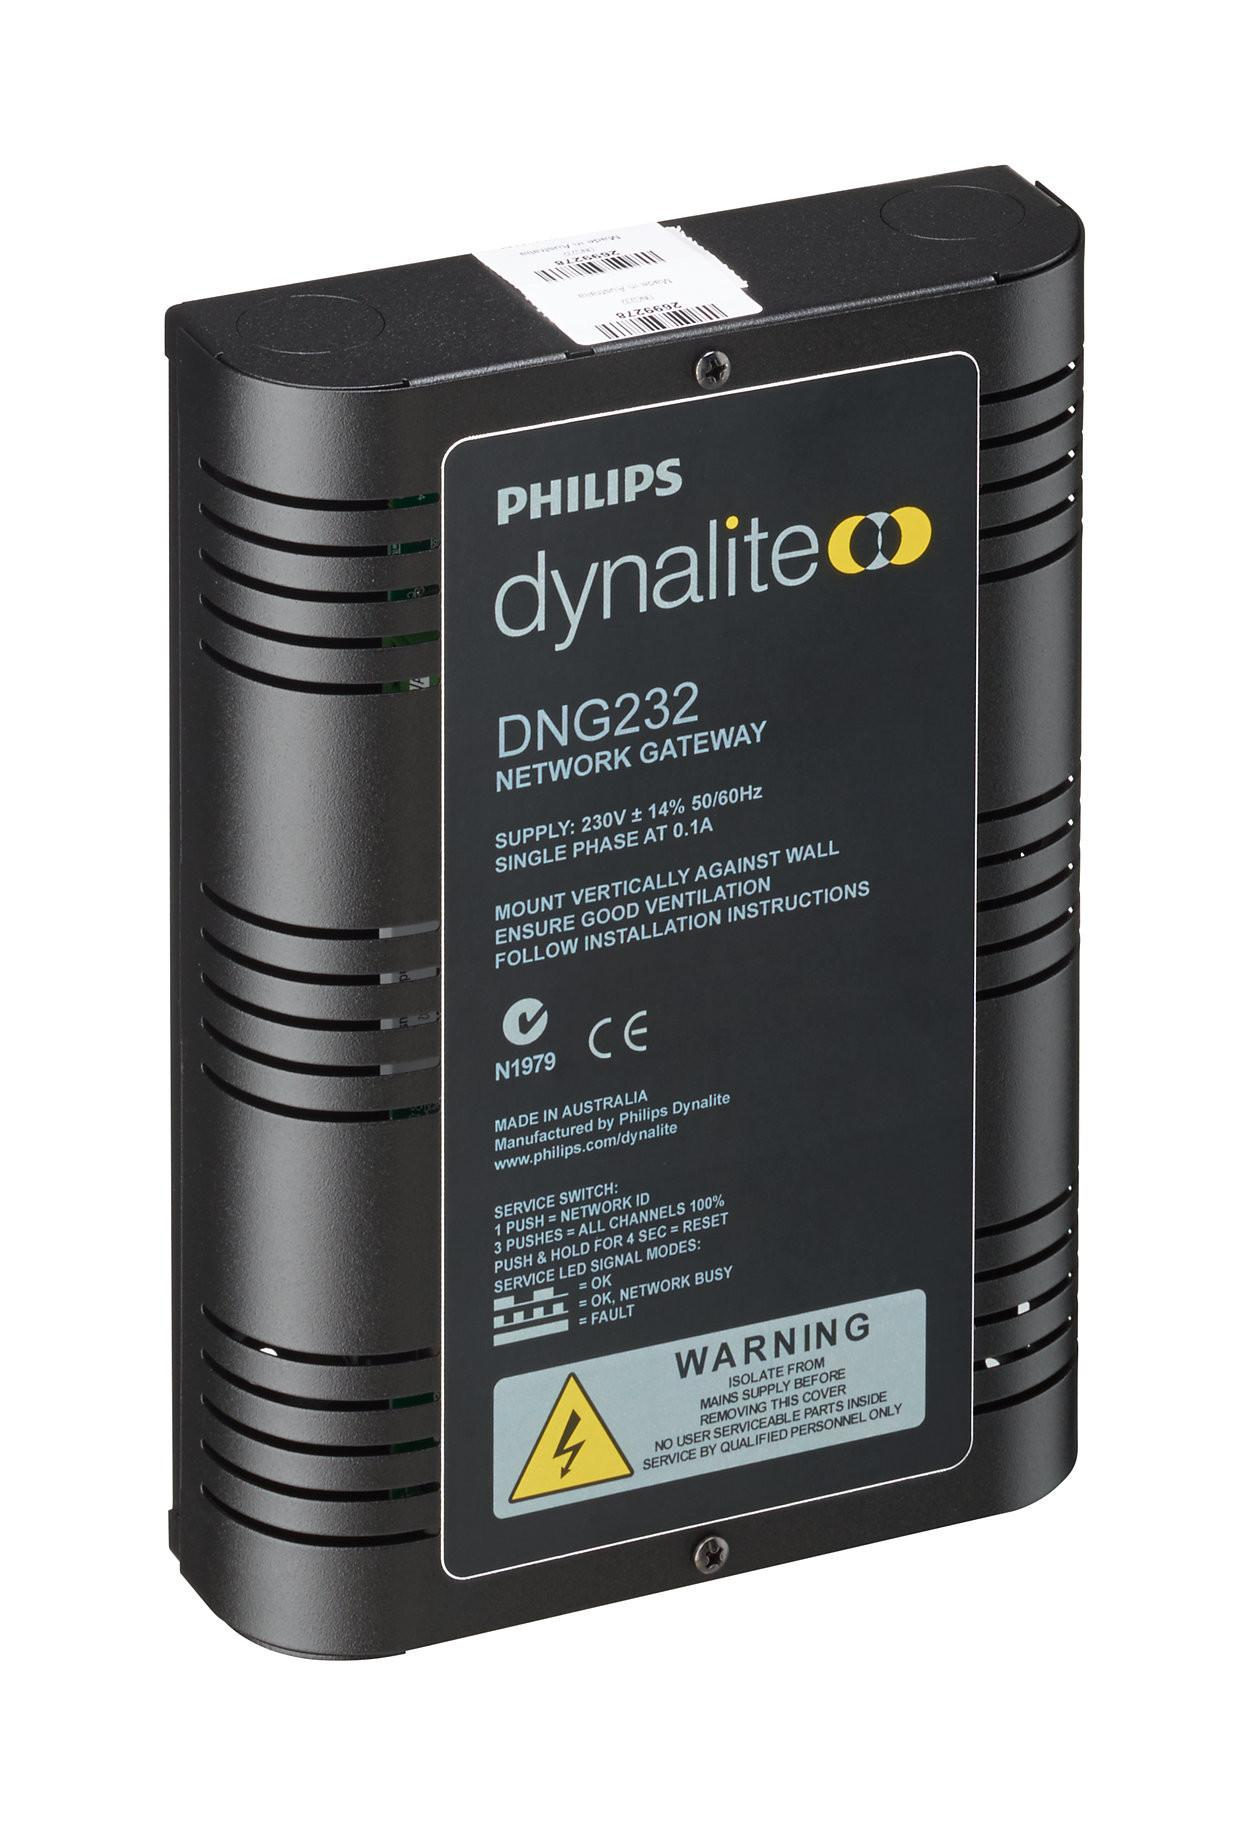 Dng232 Dynalite System Integration Philips Lighting